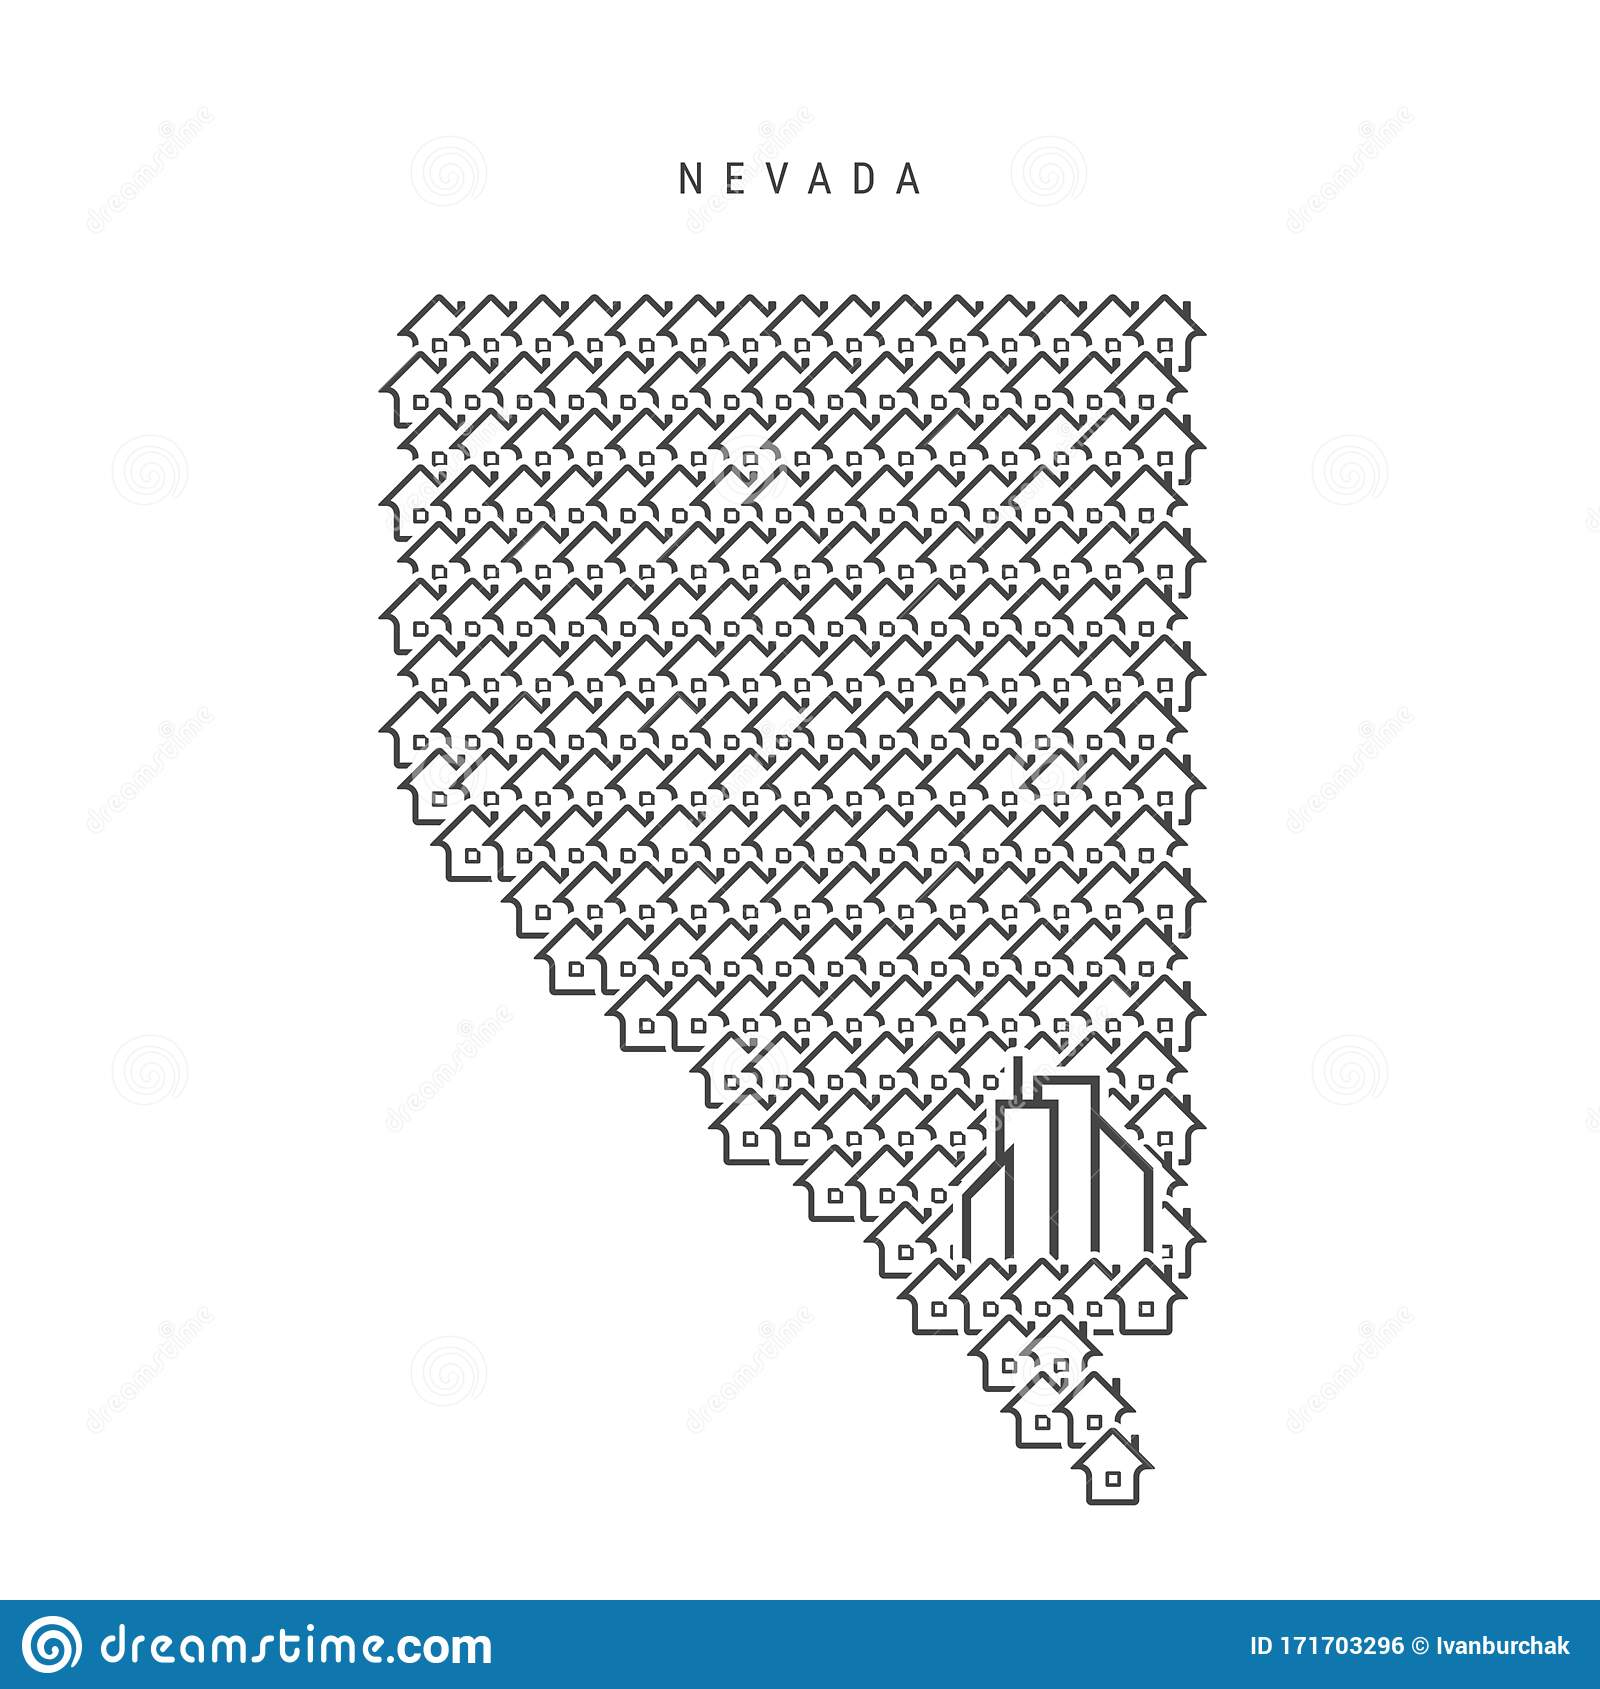 Nevada Real Estate Property Map Icons Of Houses In The Shape Of A Map Of Nevada Vector Illustration Stock Vector Illustration Of Nevada Form 171703296